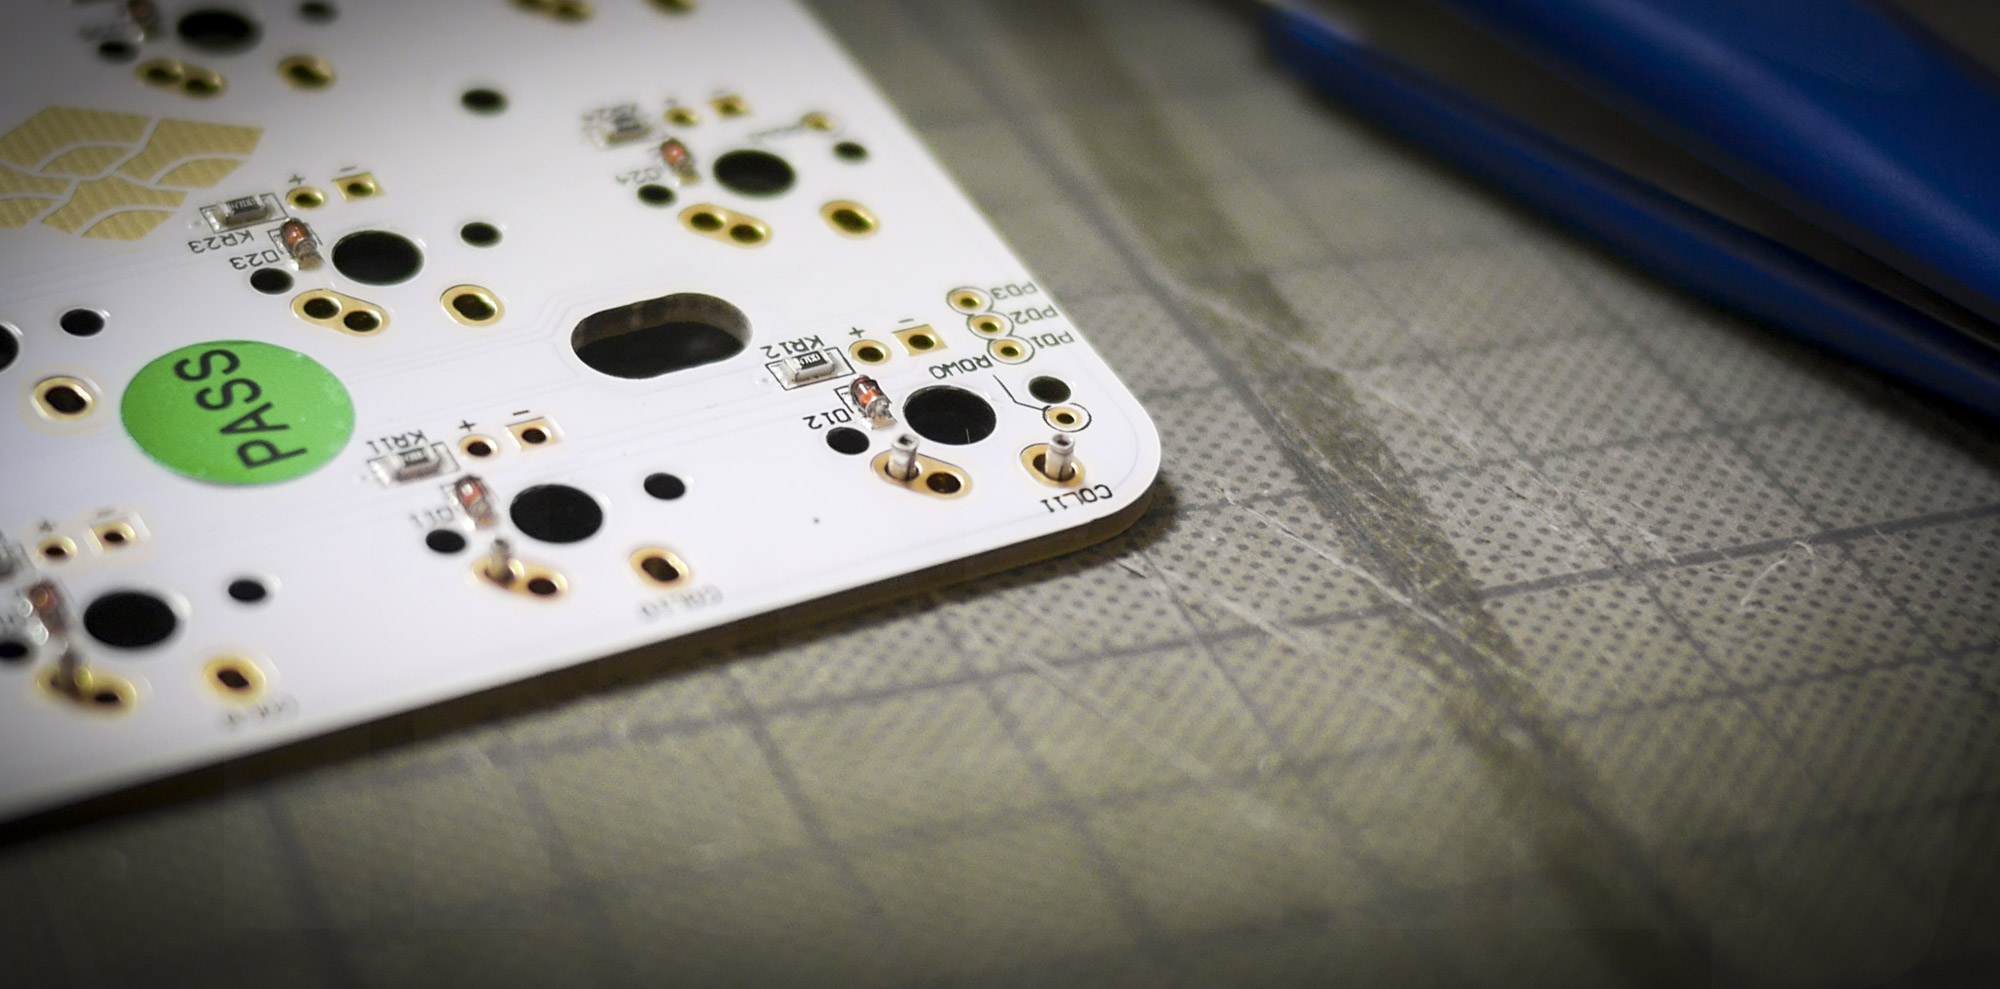 Holtite Sockets in PCB: backside